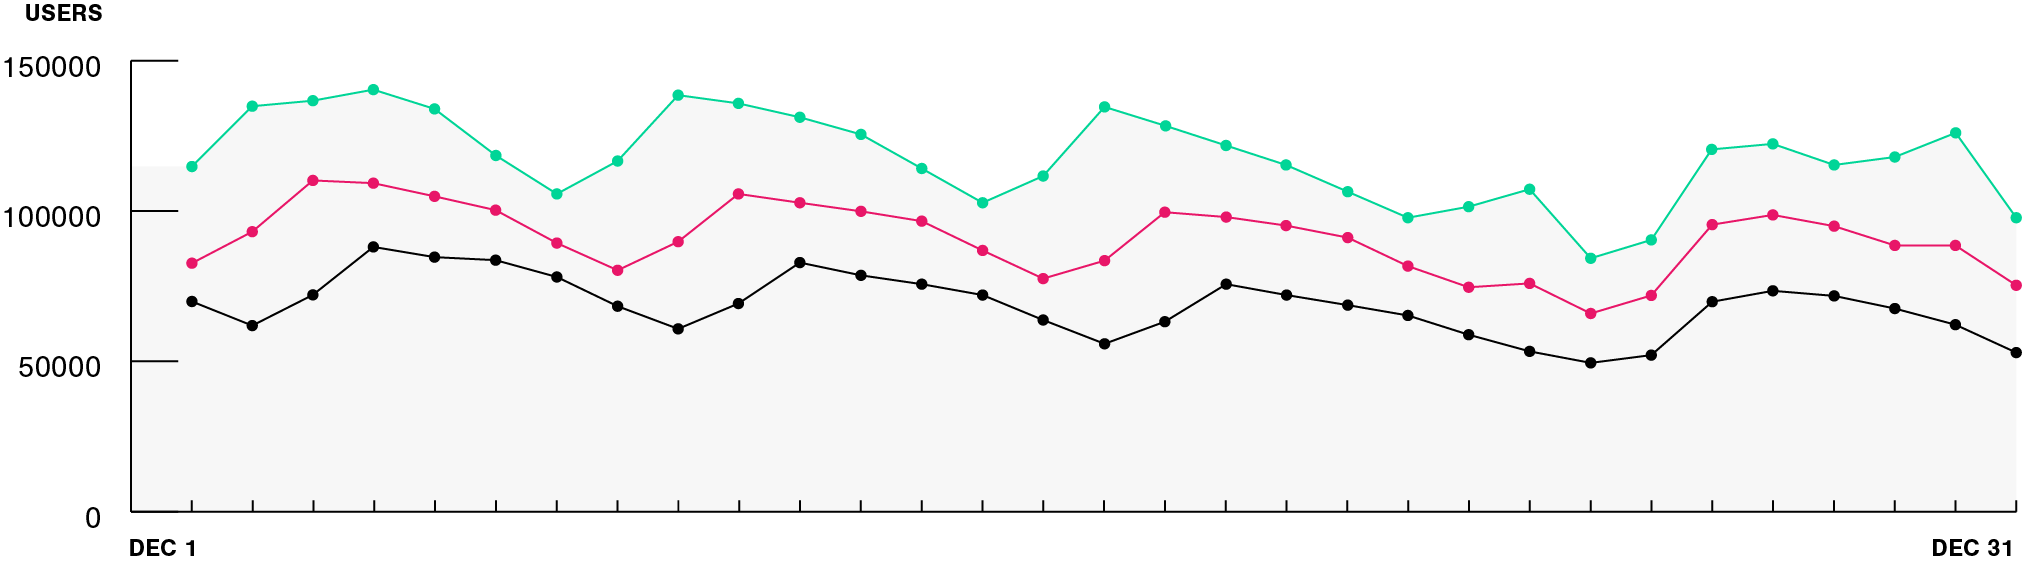 Line chart displaying year over year data for growth from 2017, 2018 and 2019.